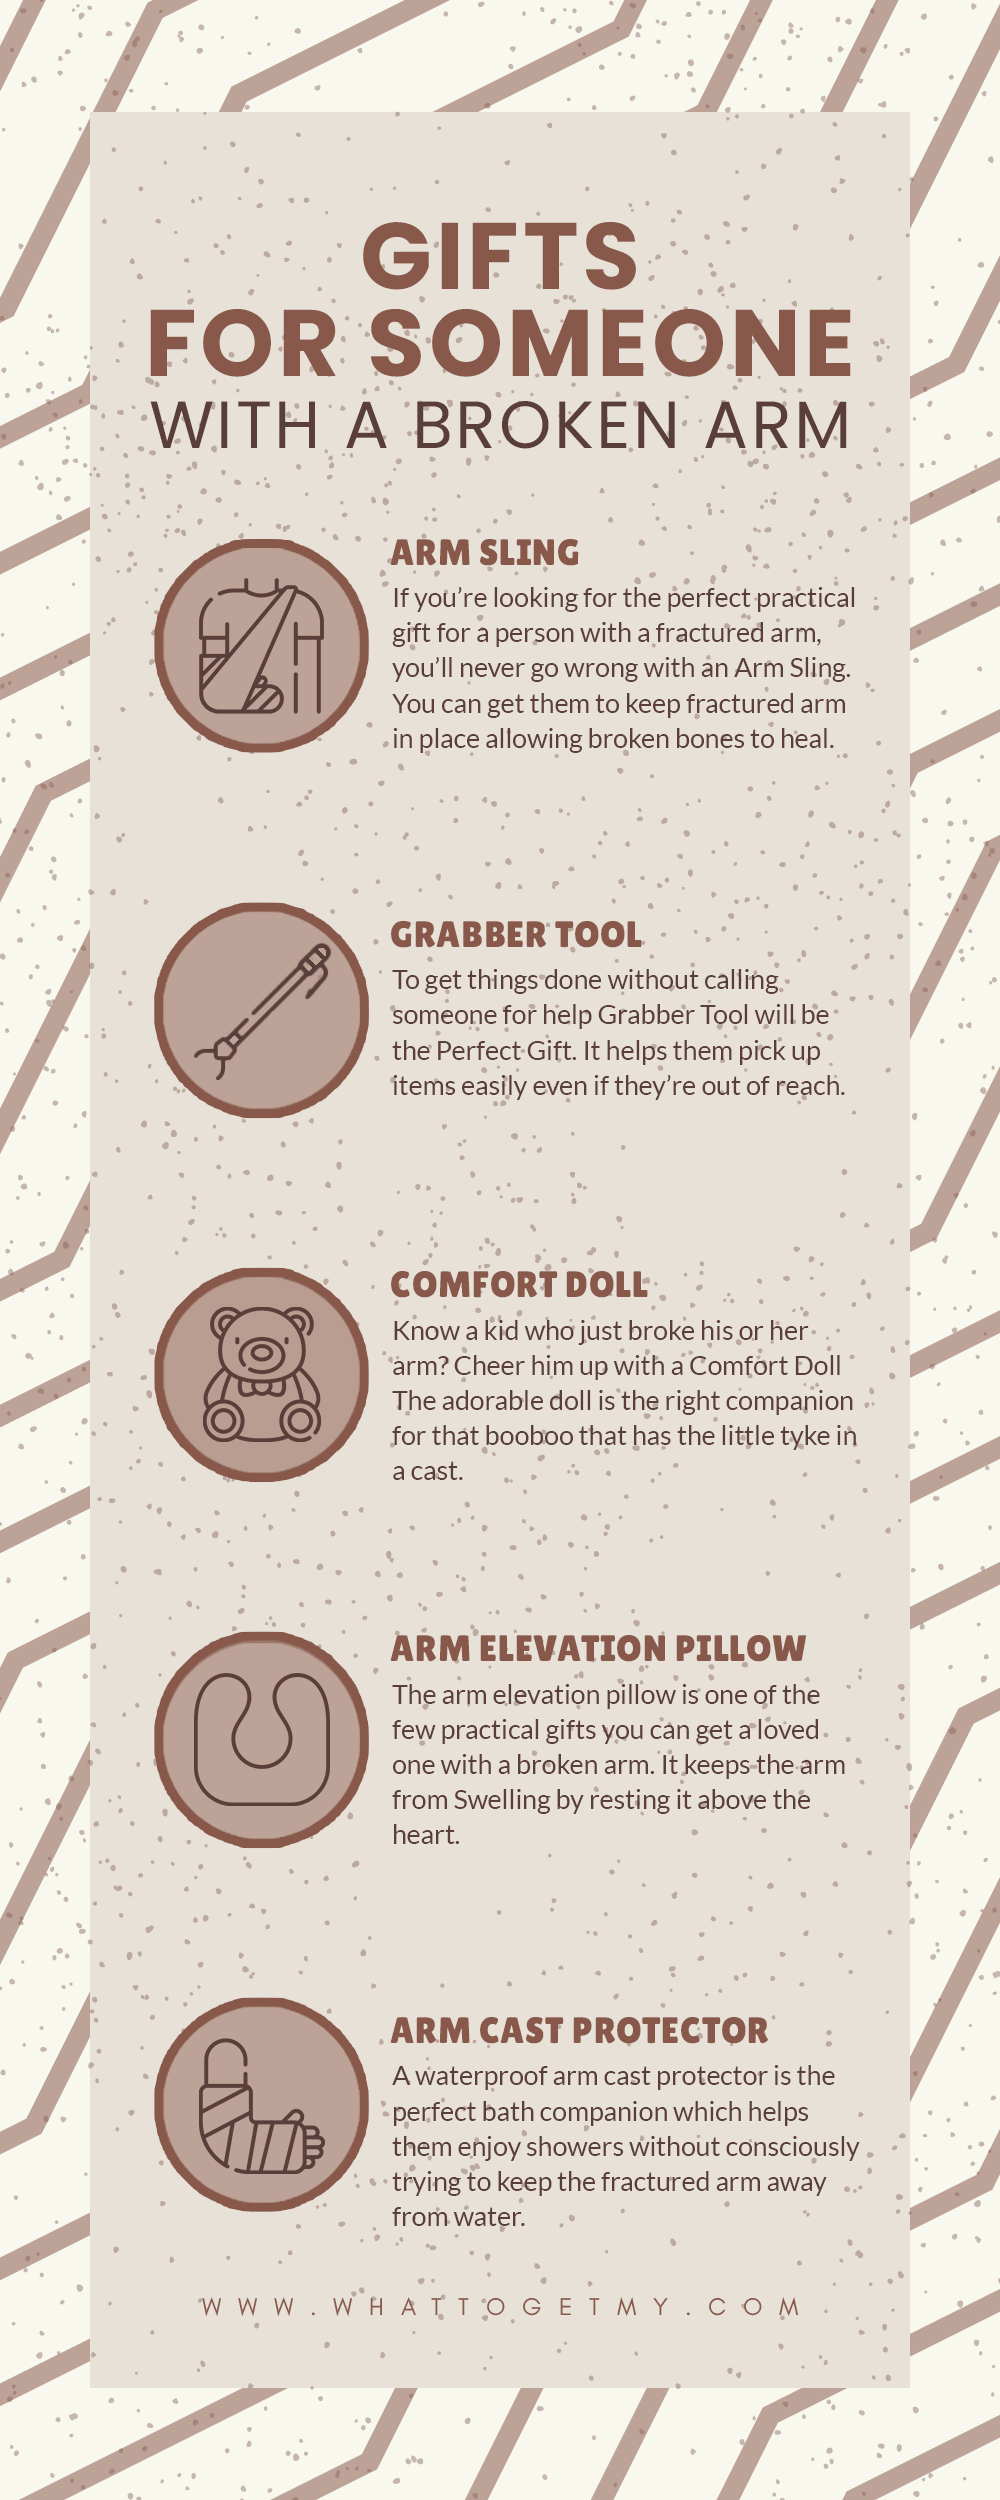 Infographic Gifts For Someone With a Broken Arm-min